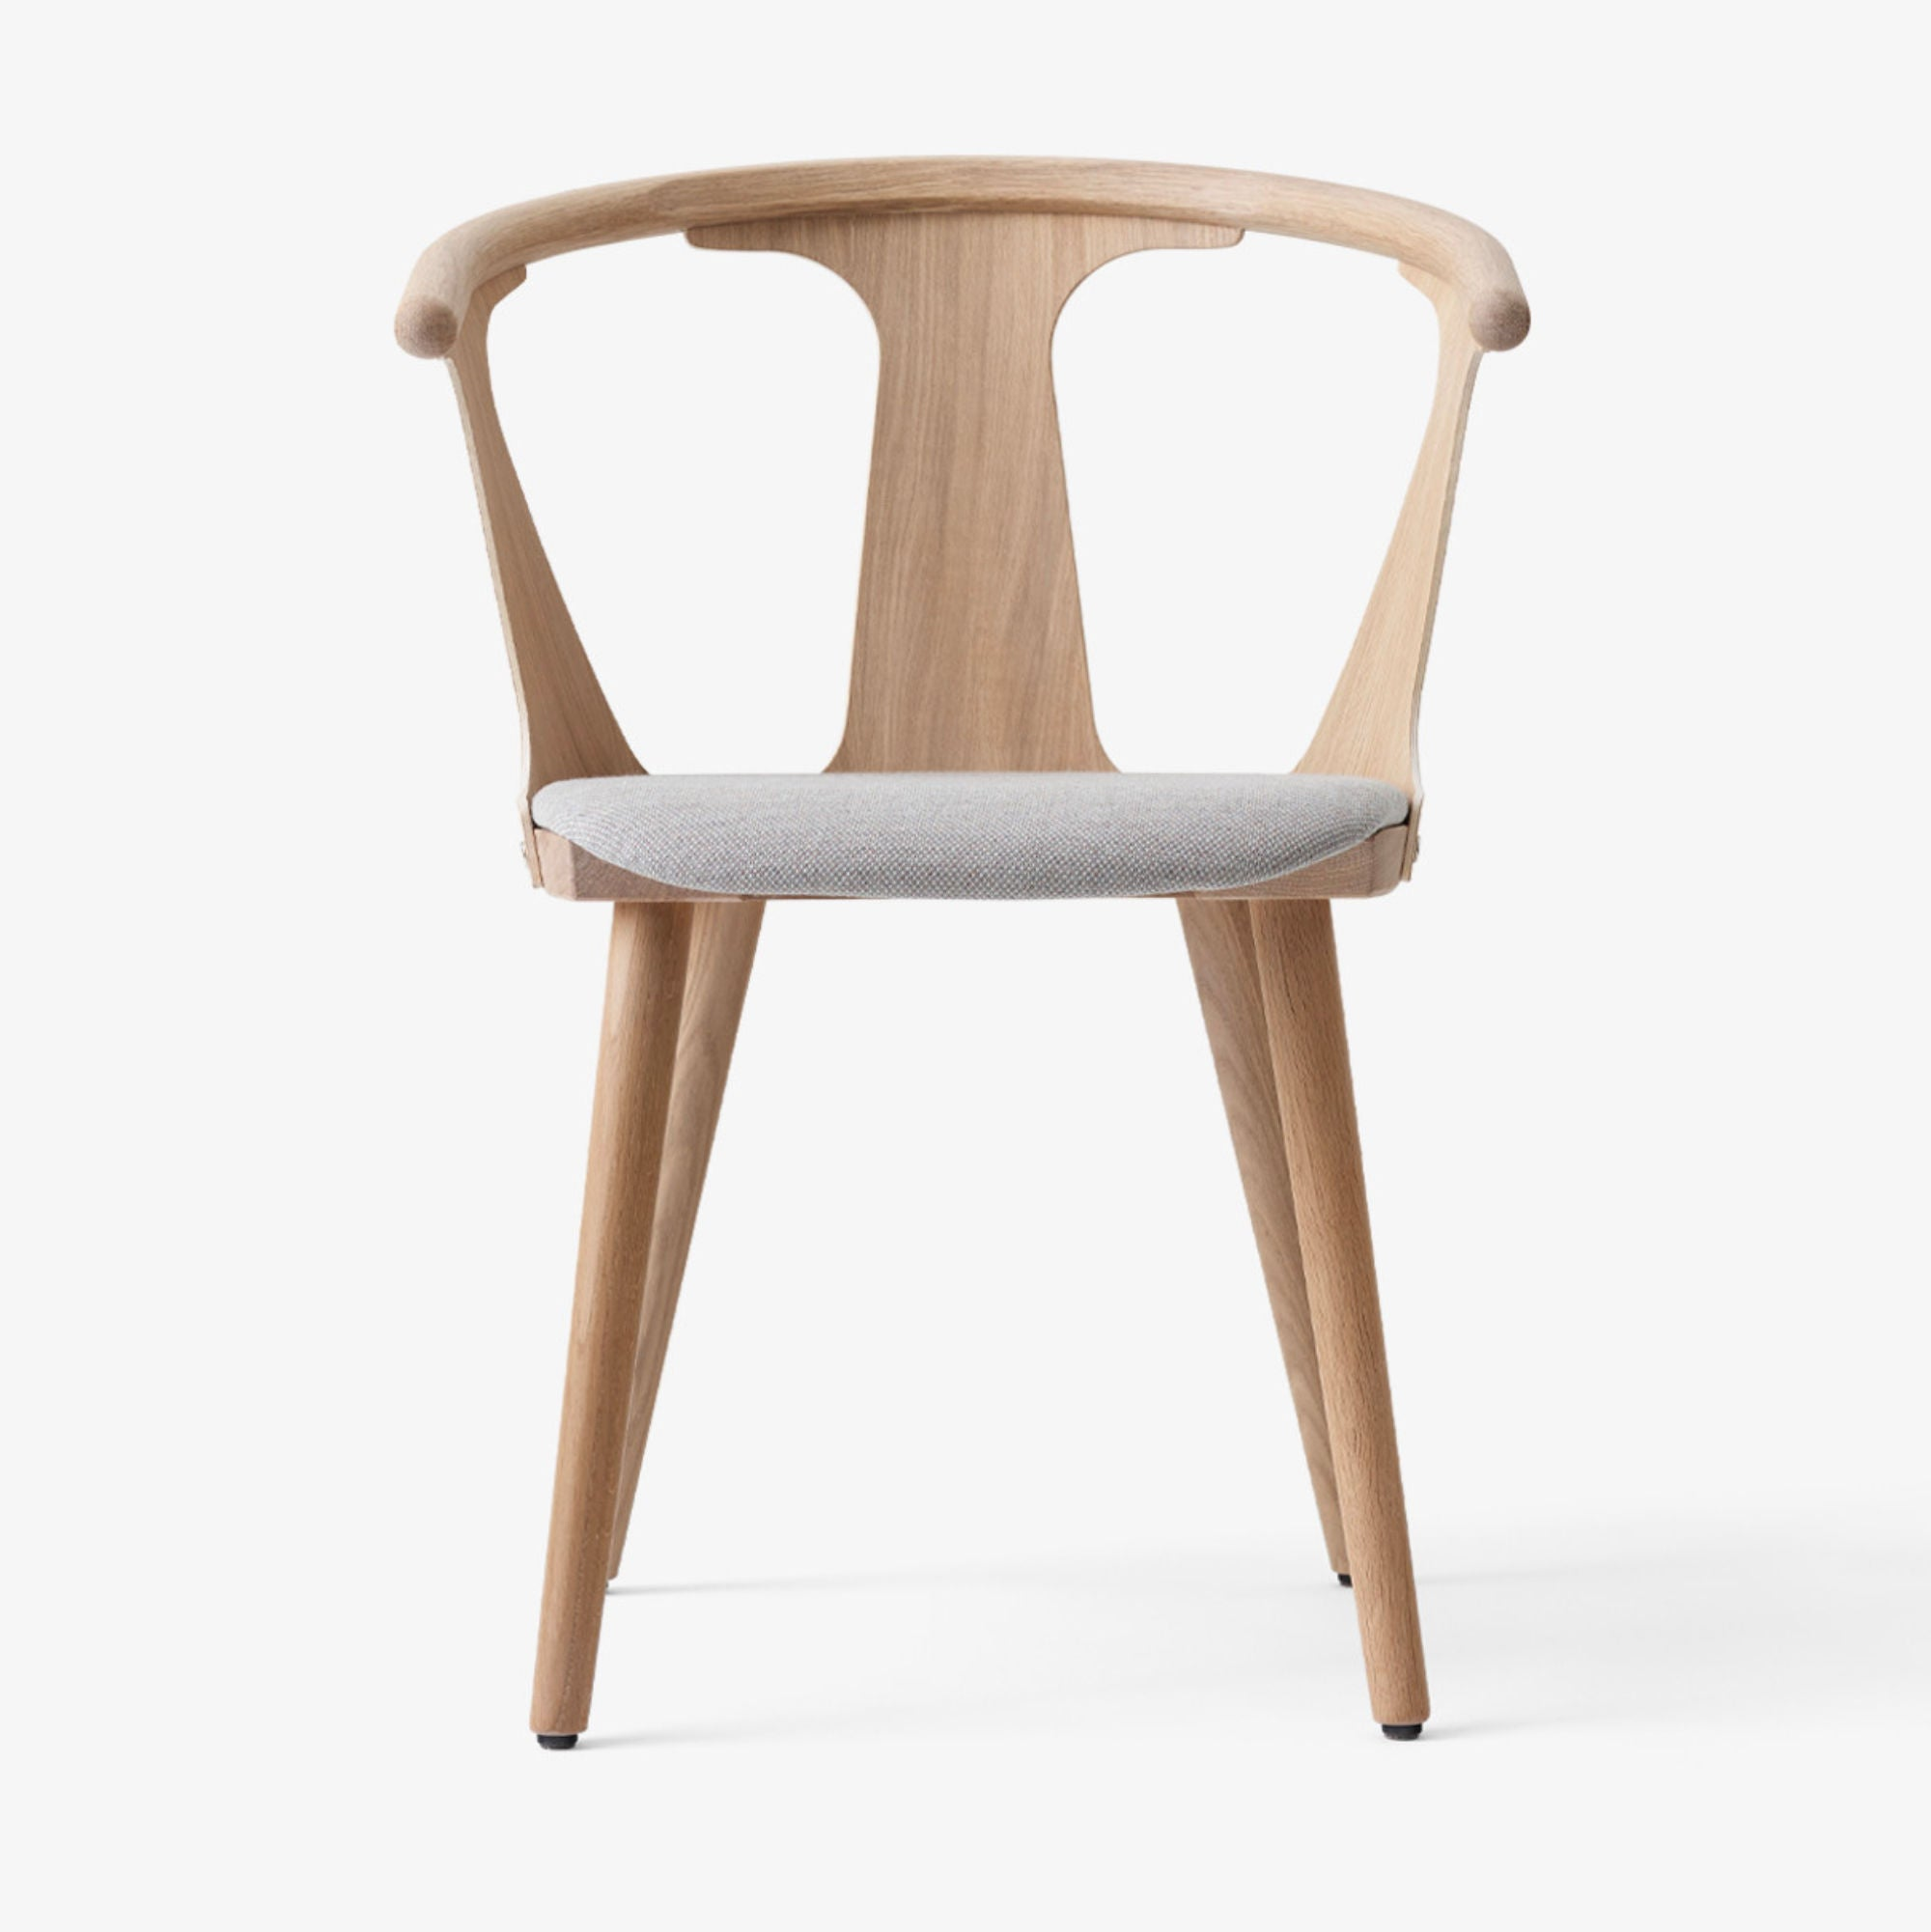 &Tradition SK2 In Between Chair , Fiord251 - White Oiled Oak